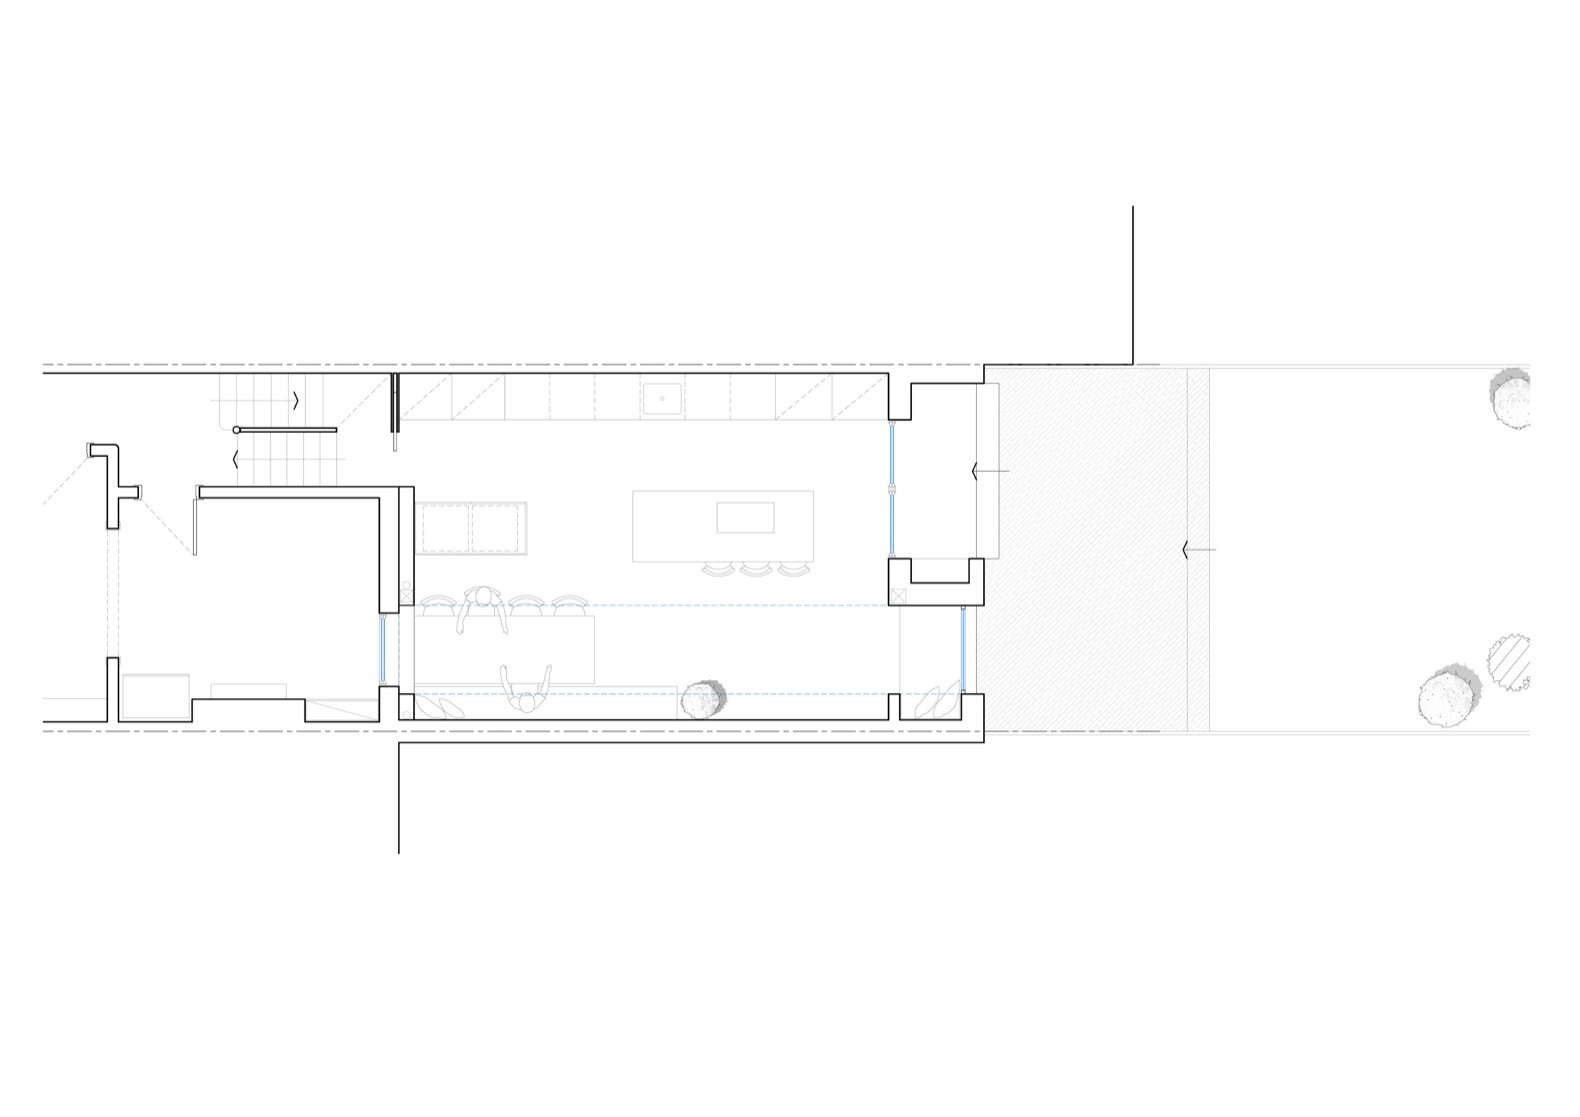 Glyn House floor plan  Photo 16 of 19 in A London Victorian Gets a Dreamy Addition Anchored by a Terrazzo Island